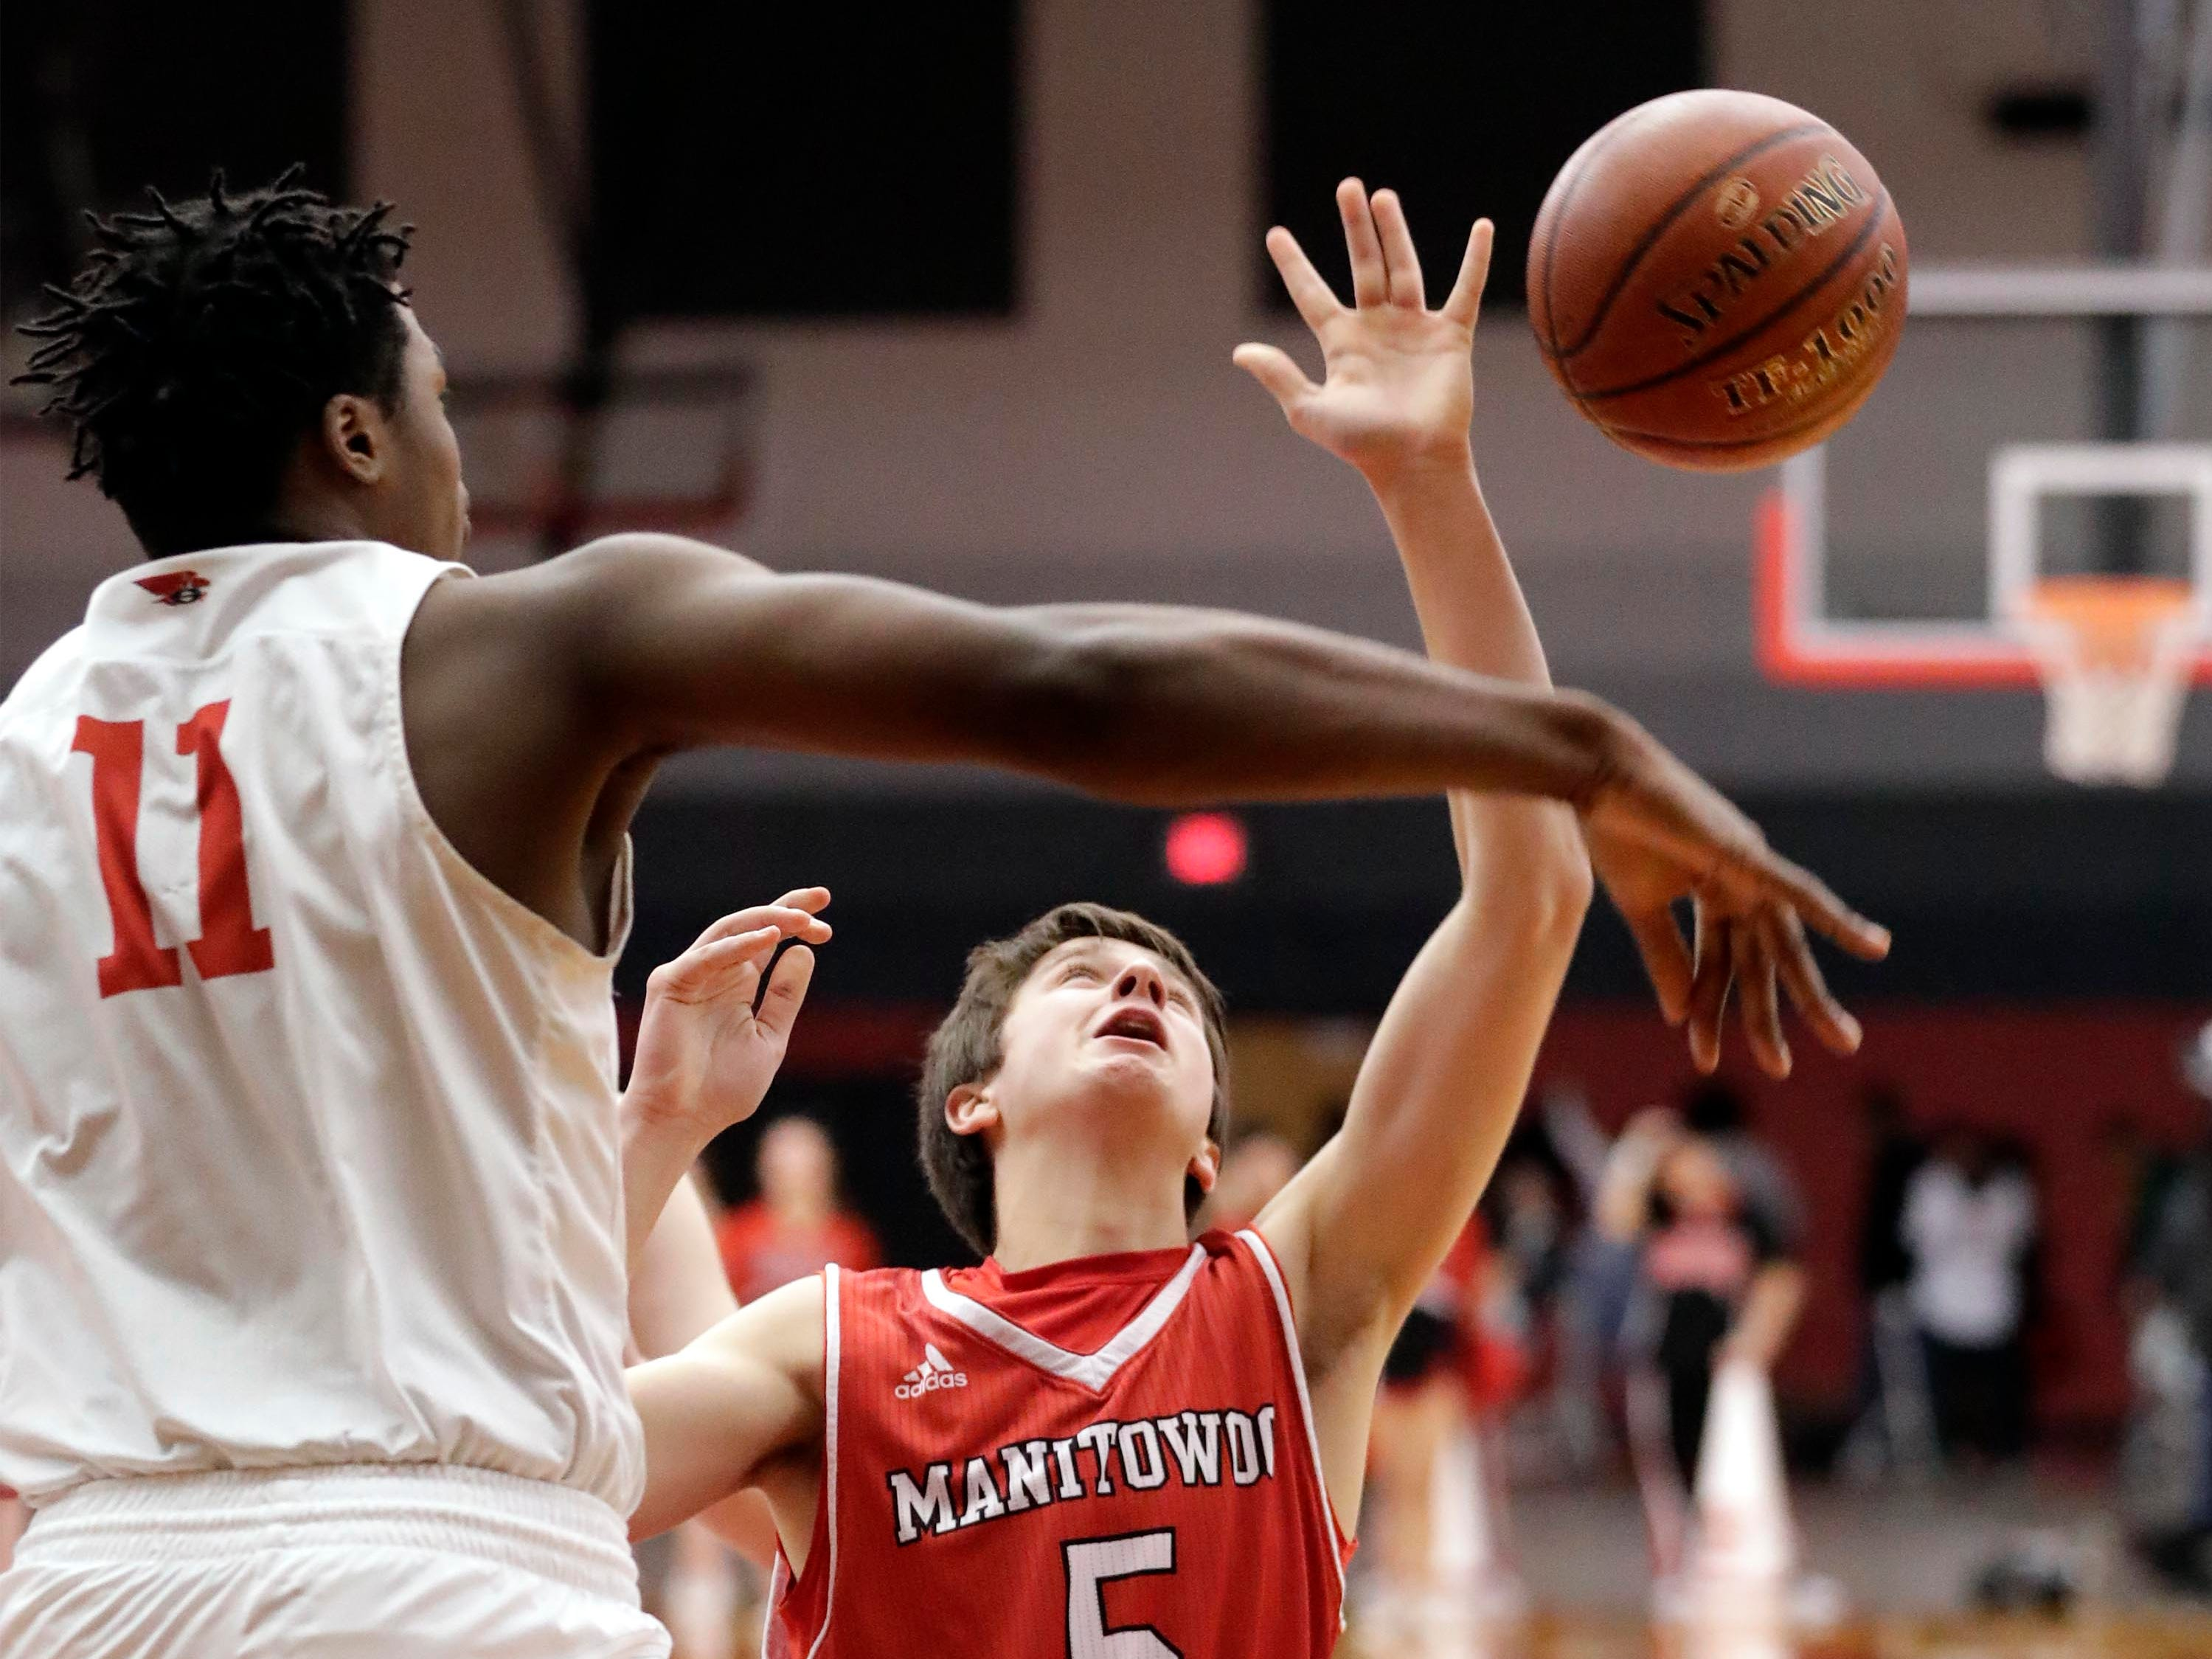 Sheboygan South's Marcell Drone (11) taps the ball away from Manitowoc Lincoln's Josh Hoffman (5), Tuesday, February 26, 2019, in Sheboygan, Wis.